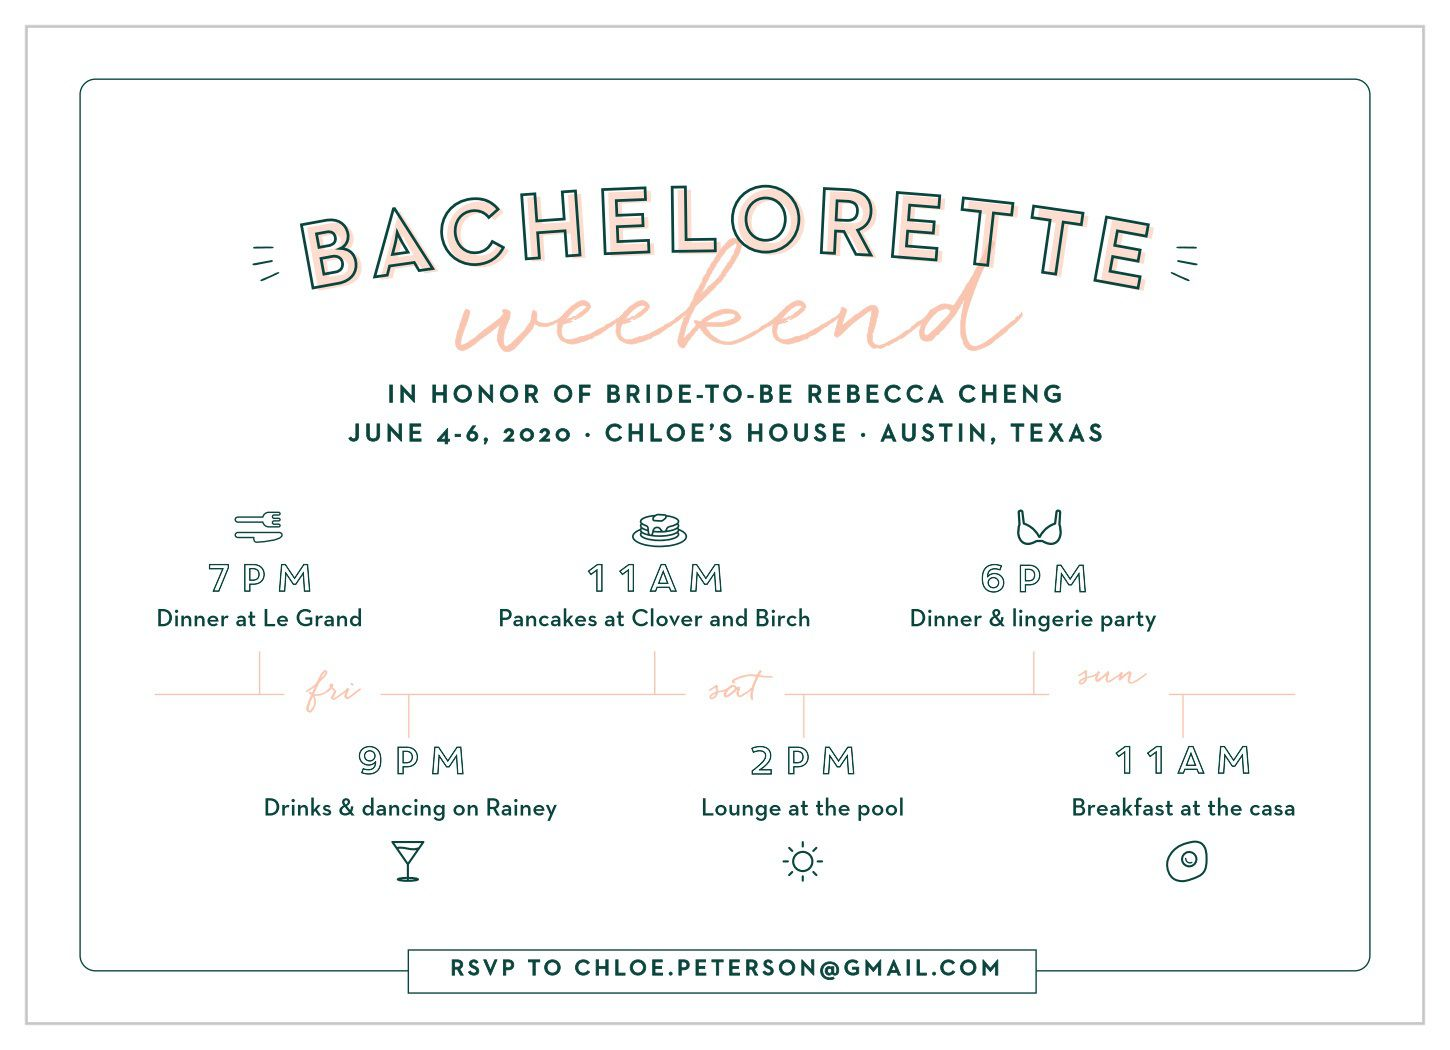 009 Archaicawful Bachelorette Itinerary Template Free Highest Clarity  Party Editable DownloadFull